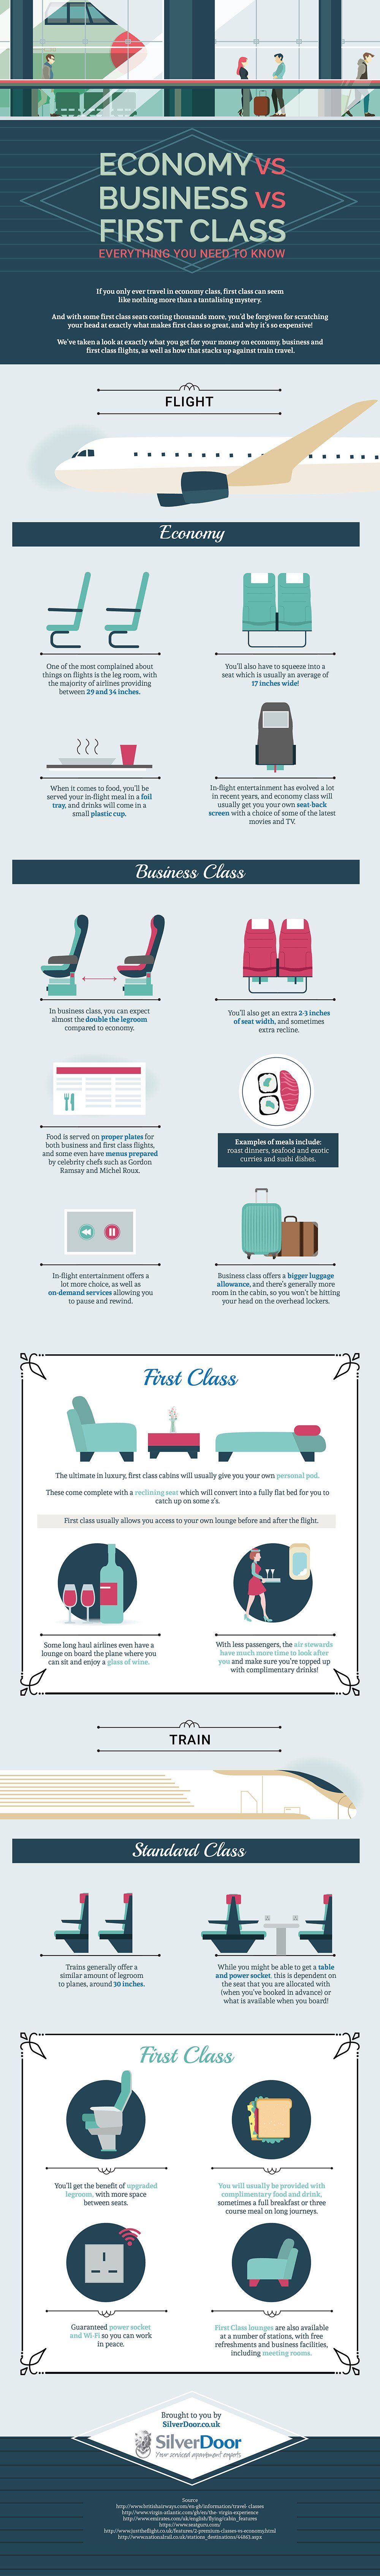 Economy vs Business vs First Class - Everything You Need To Know #Infographic